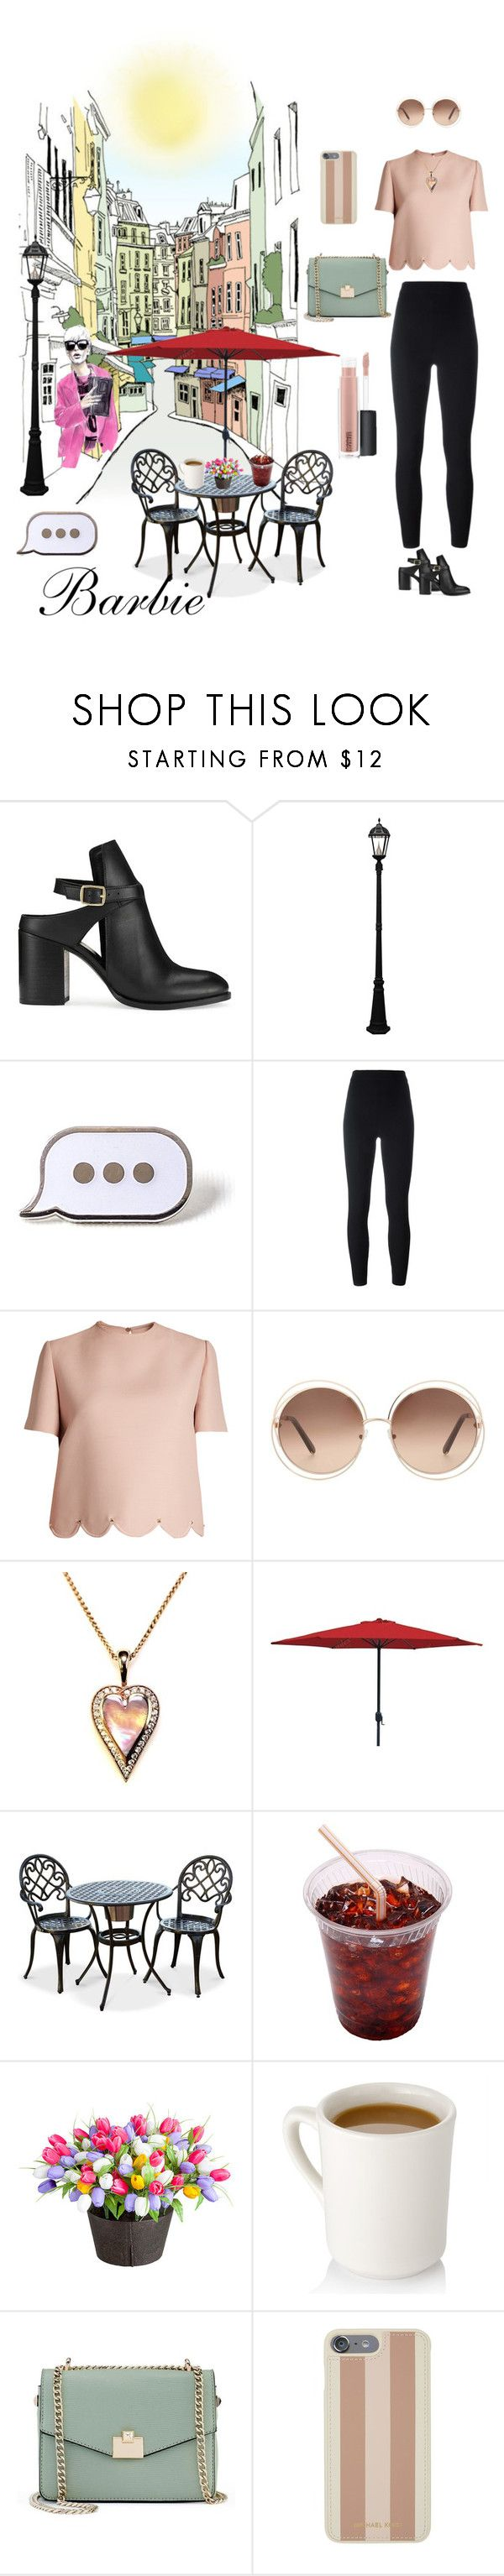 """Cita"" by ramado110 ❤ liked on Polyvore featuring Miss Selfridge, Gama Sonic, PINTRILL, Yeezy by Kanye West, Valentino, Chloé, Improvements, Jennifer Lopez, Michael Kors and MAC Cosmetics"